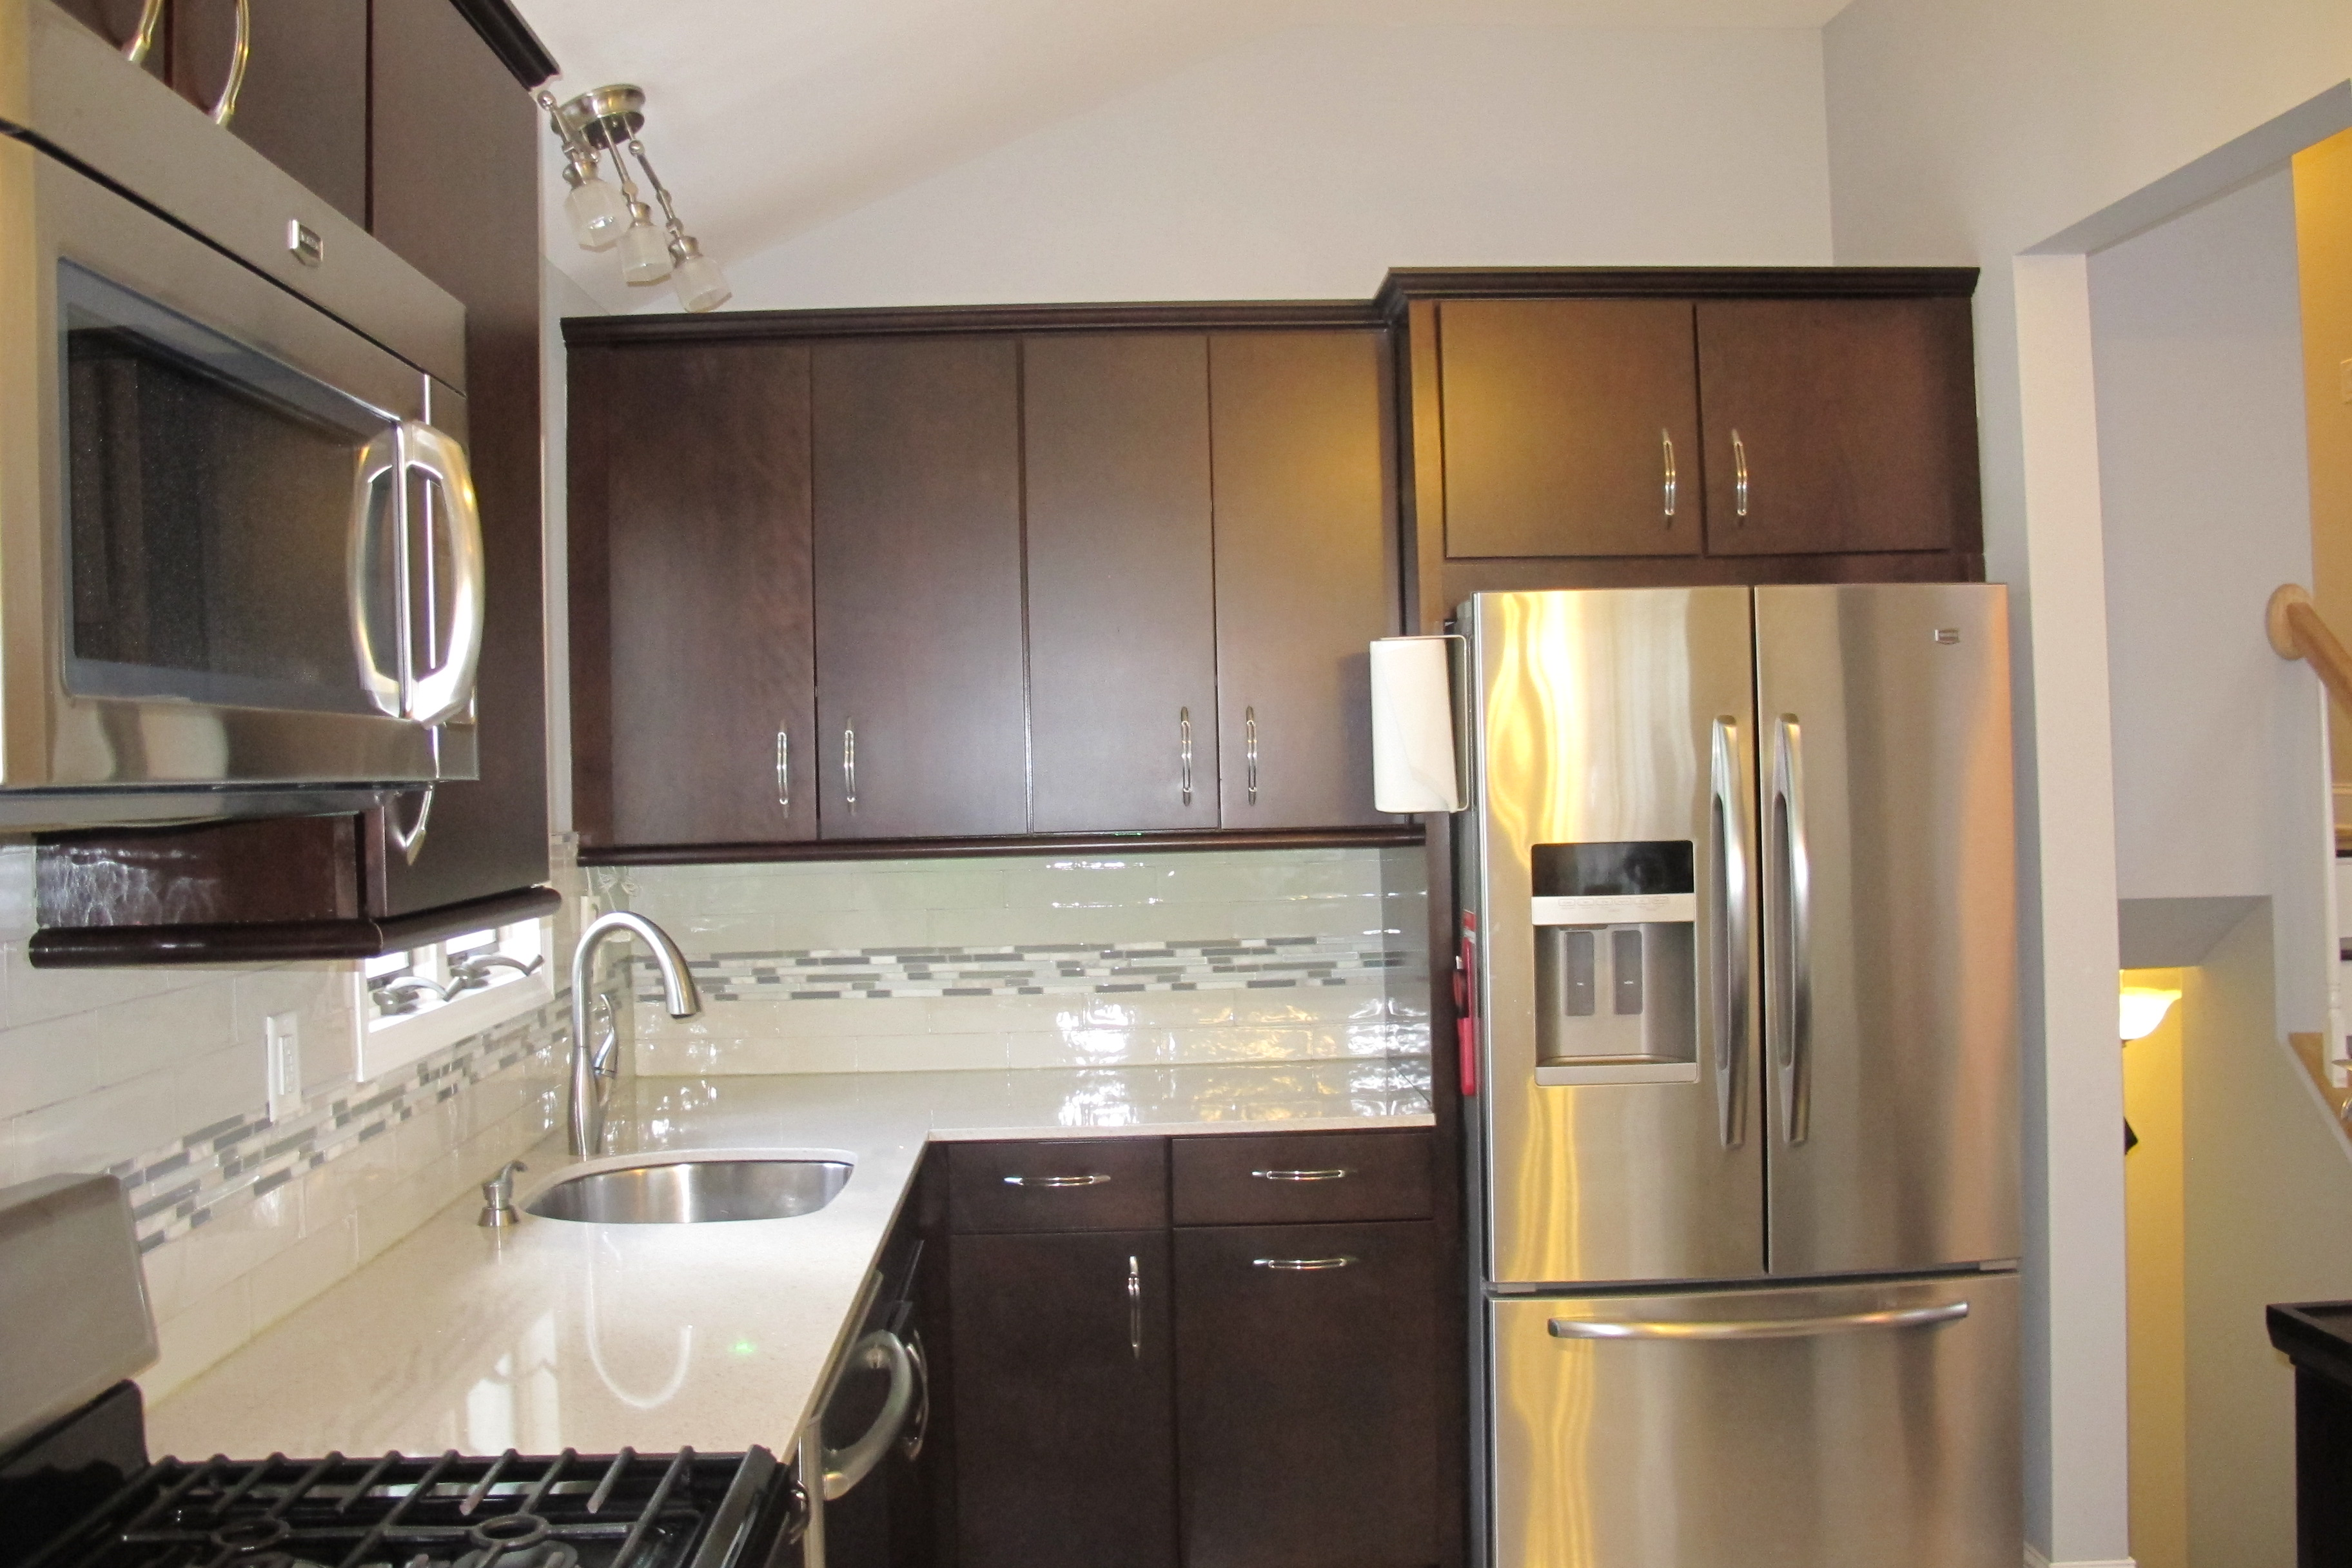 143 commerce kitchen ref view - A.T. REAL Estate Specialists